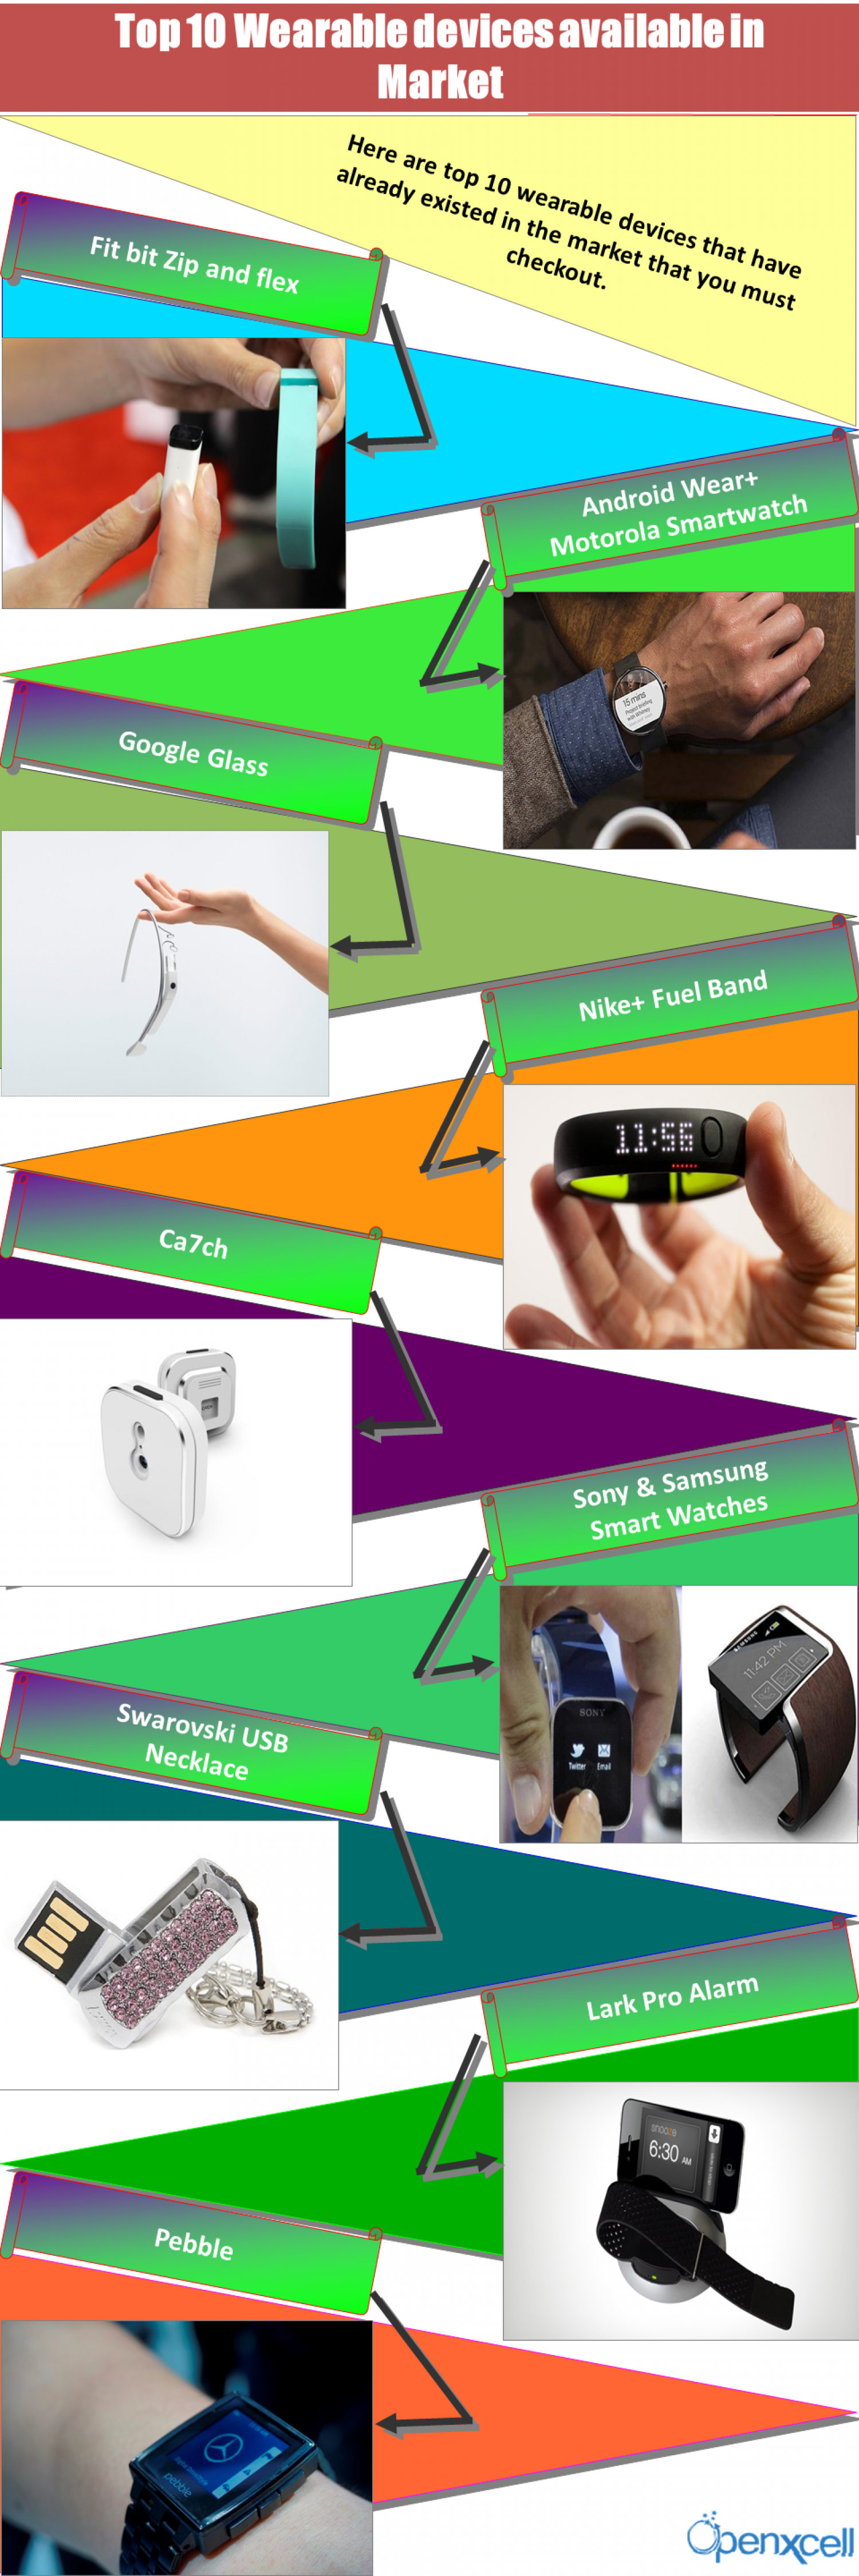 Top 10 Wearable devices available in Market Infographic